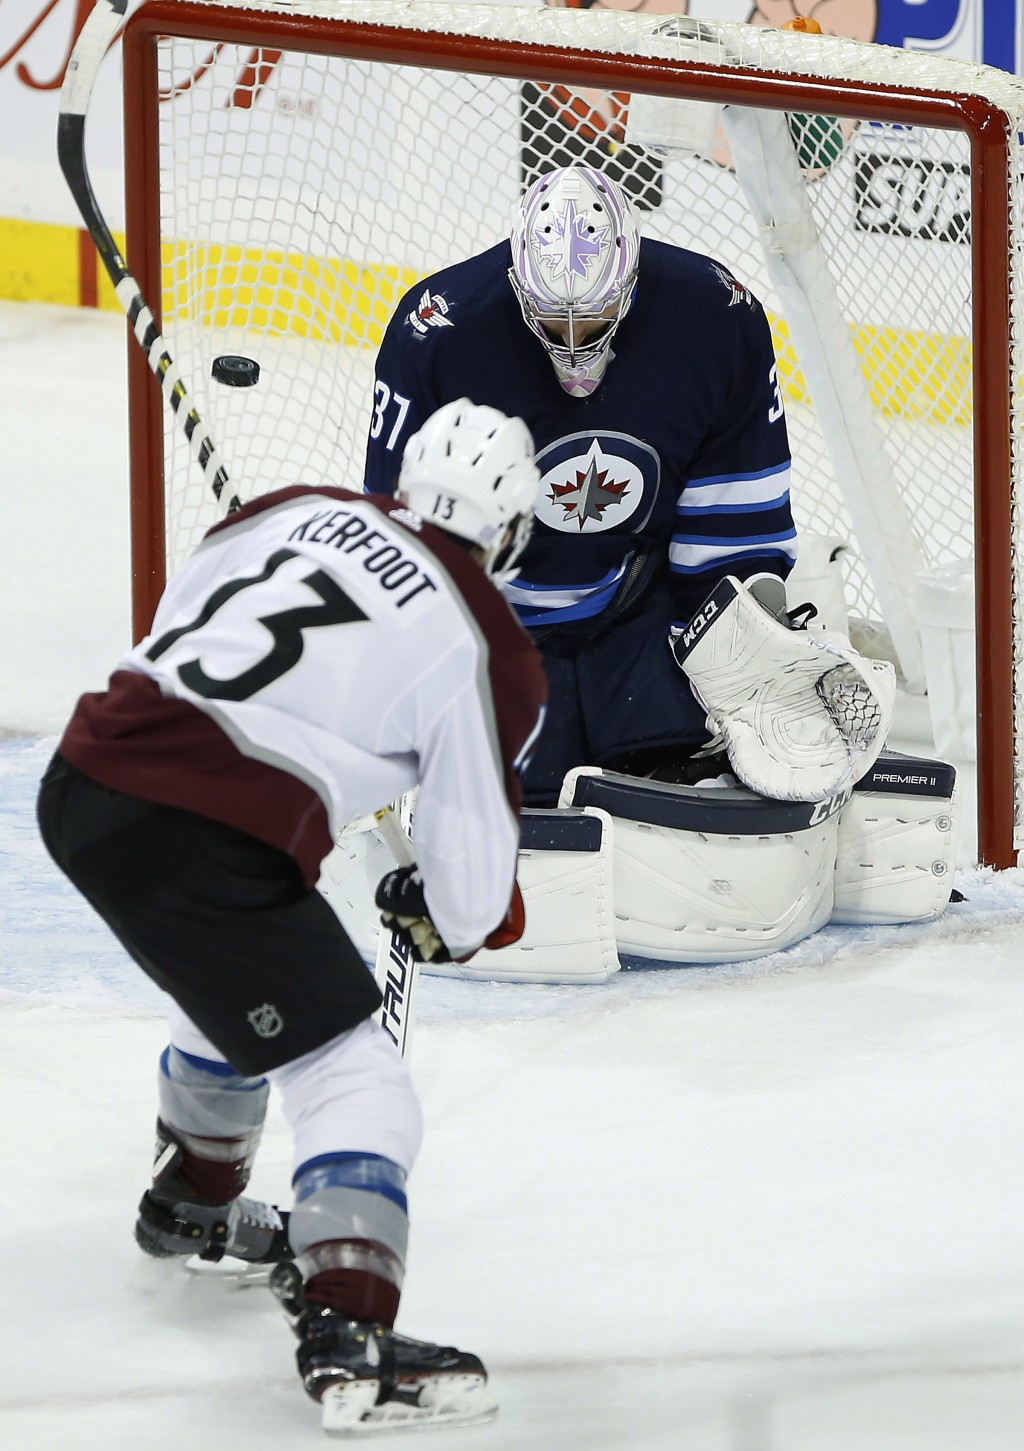 Winnipeg Jets goaltender Connor Hellebuyck (37) saves the shot by Colorado Avalanche's Alexander Kerfoot (13) and it goes wide during the first period